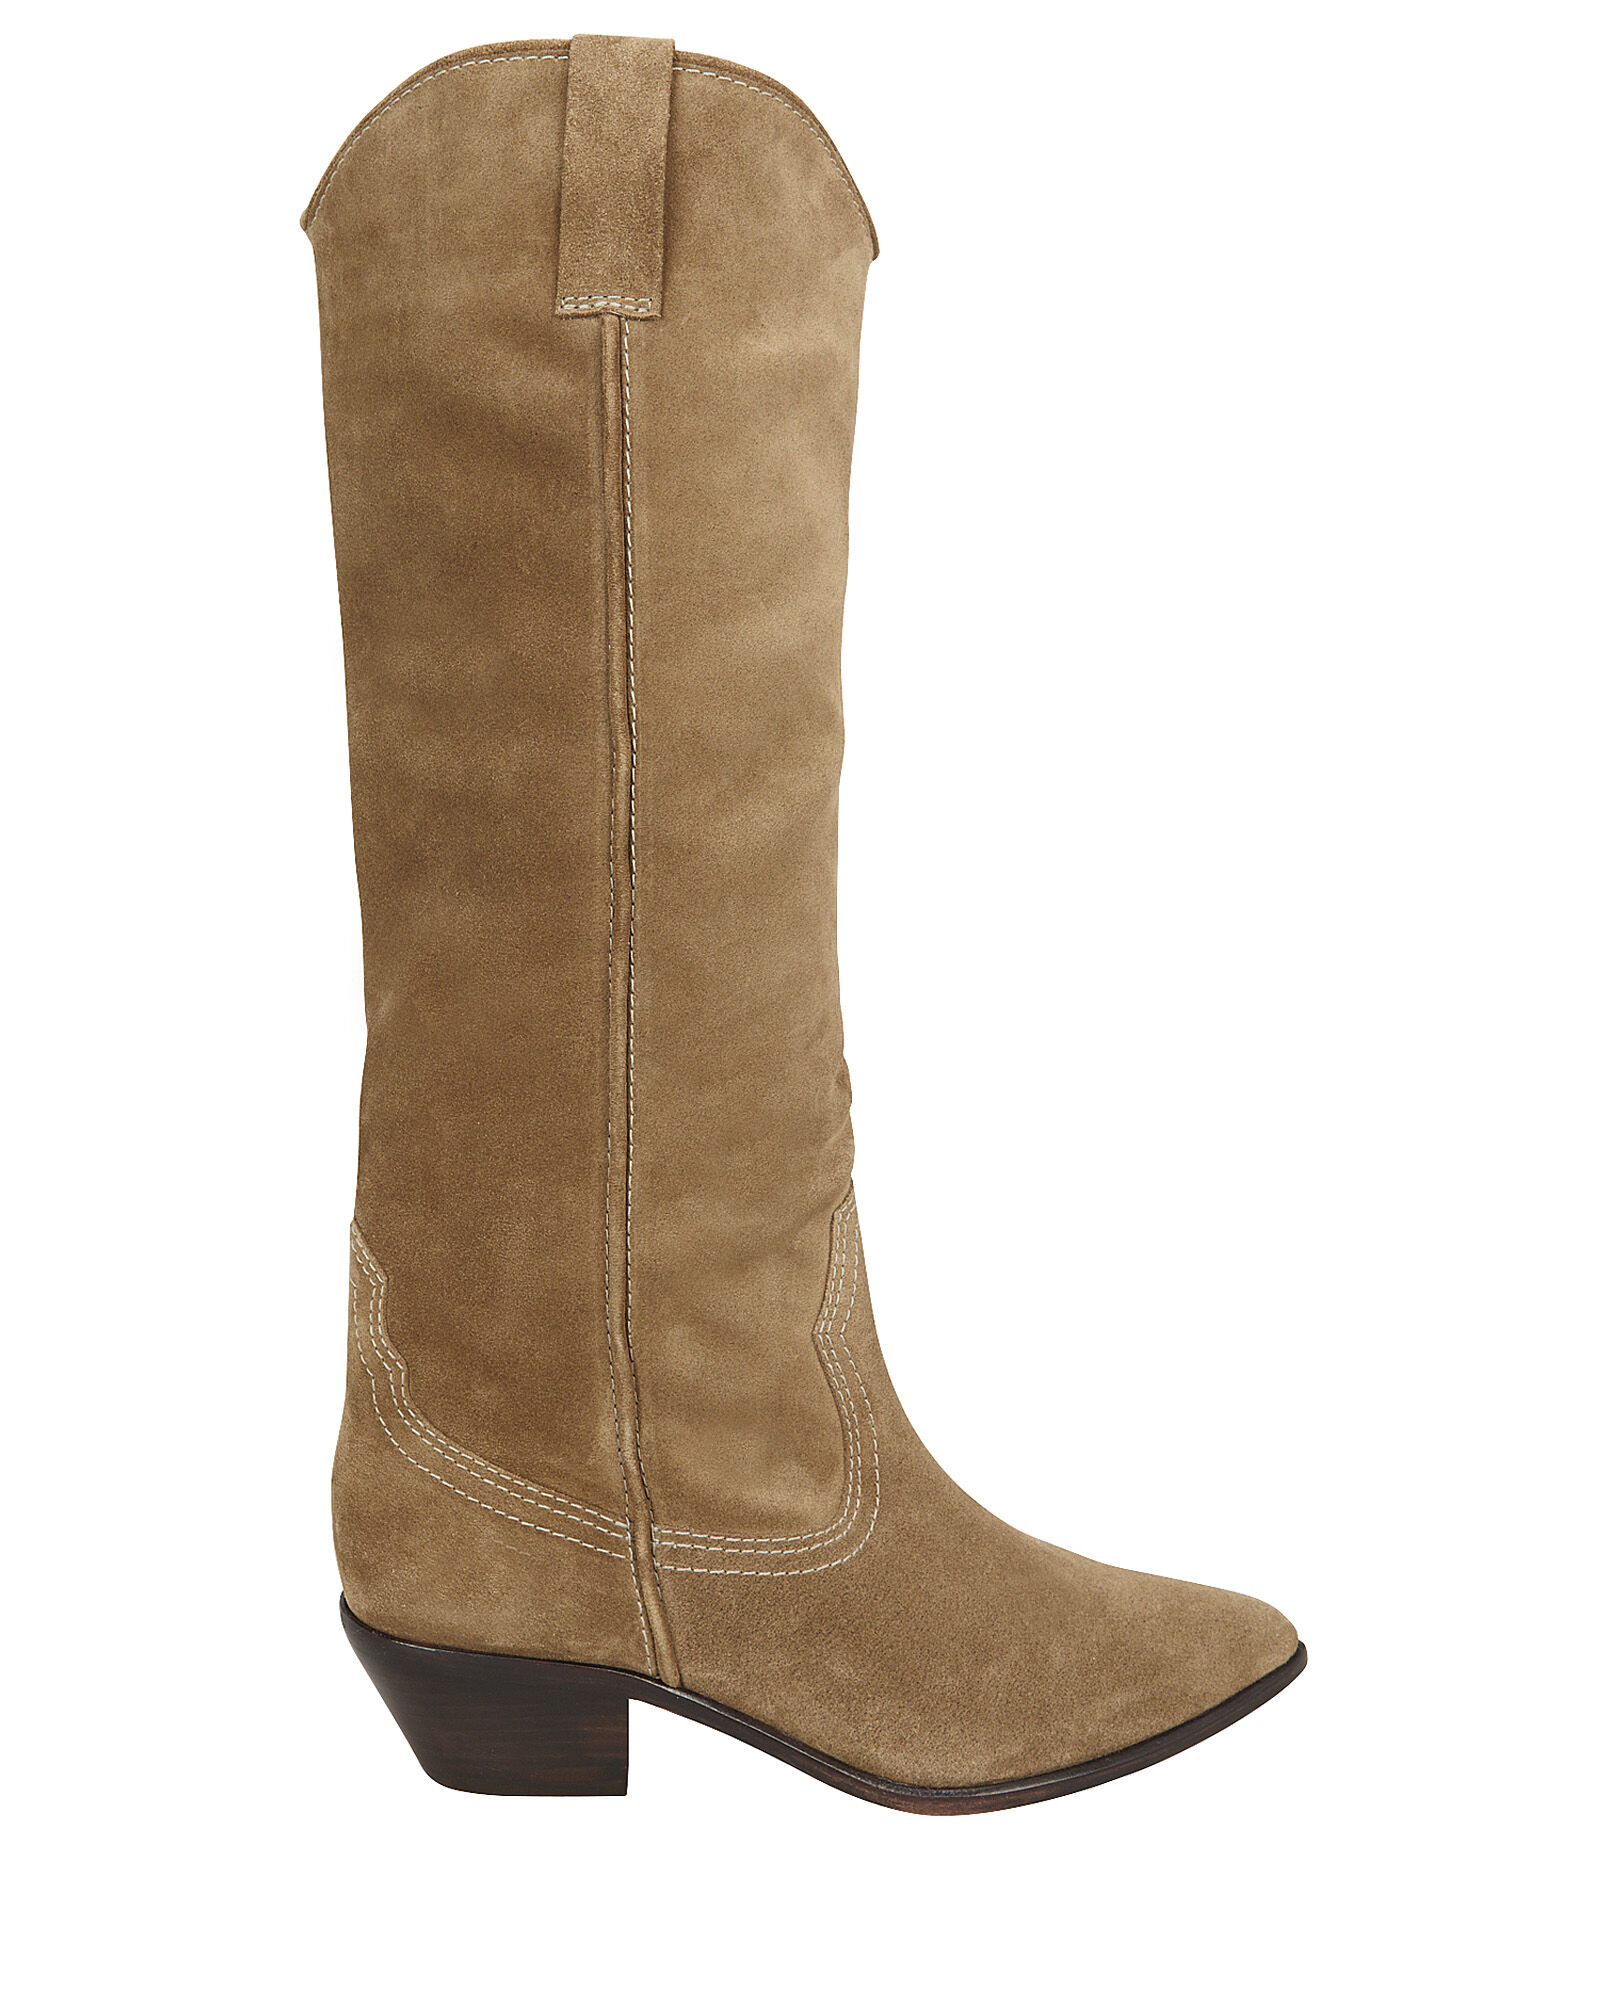 Dylan Western Knee-High Boots, TAN, hi-res